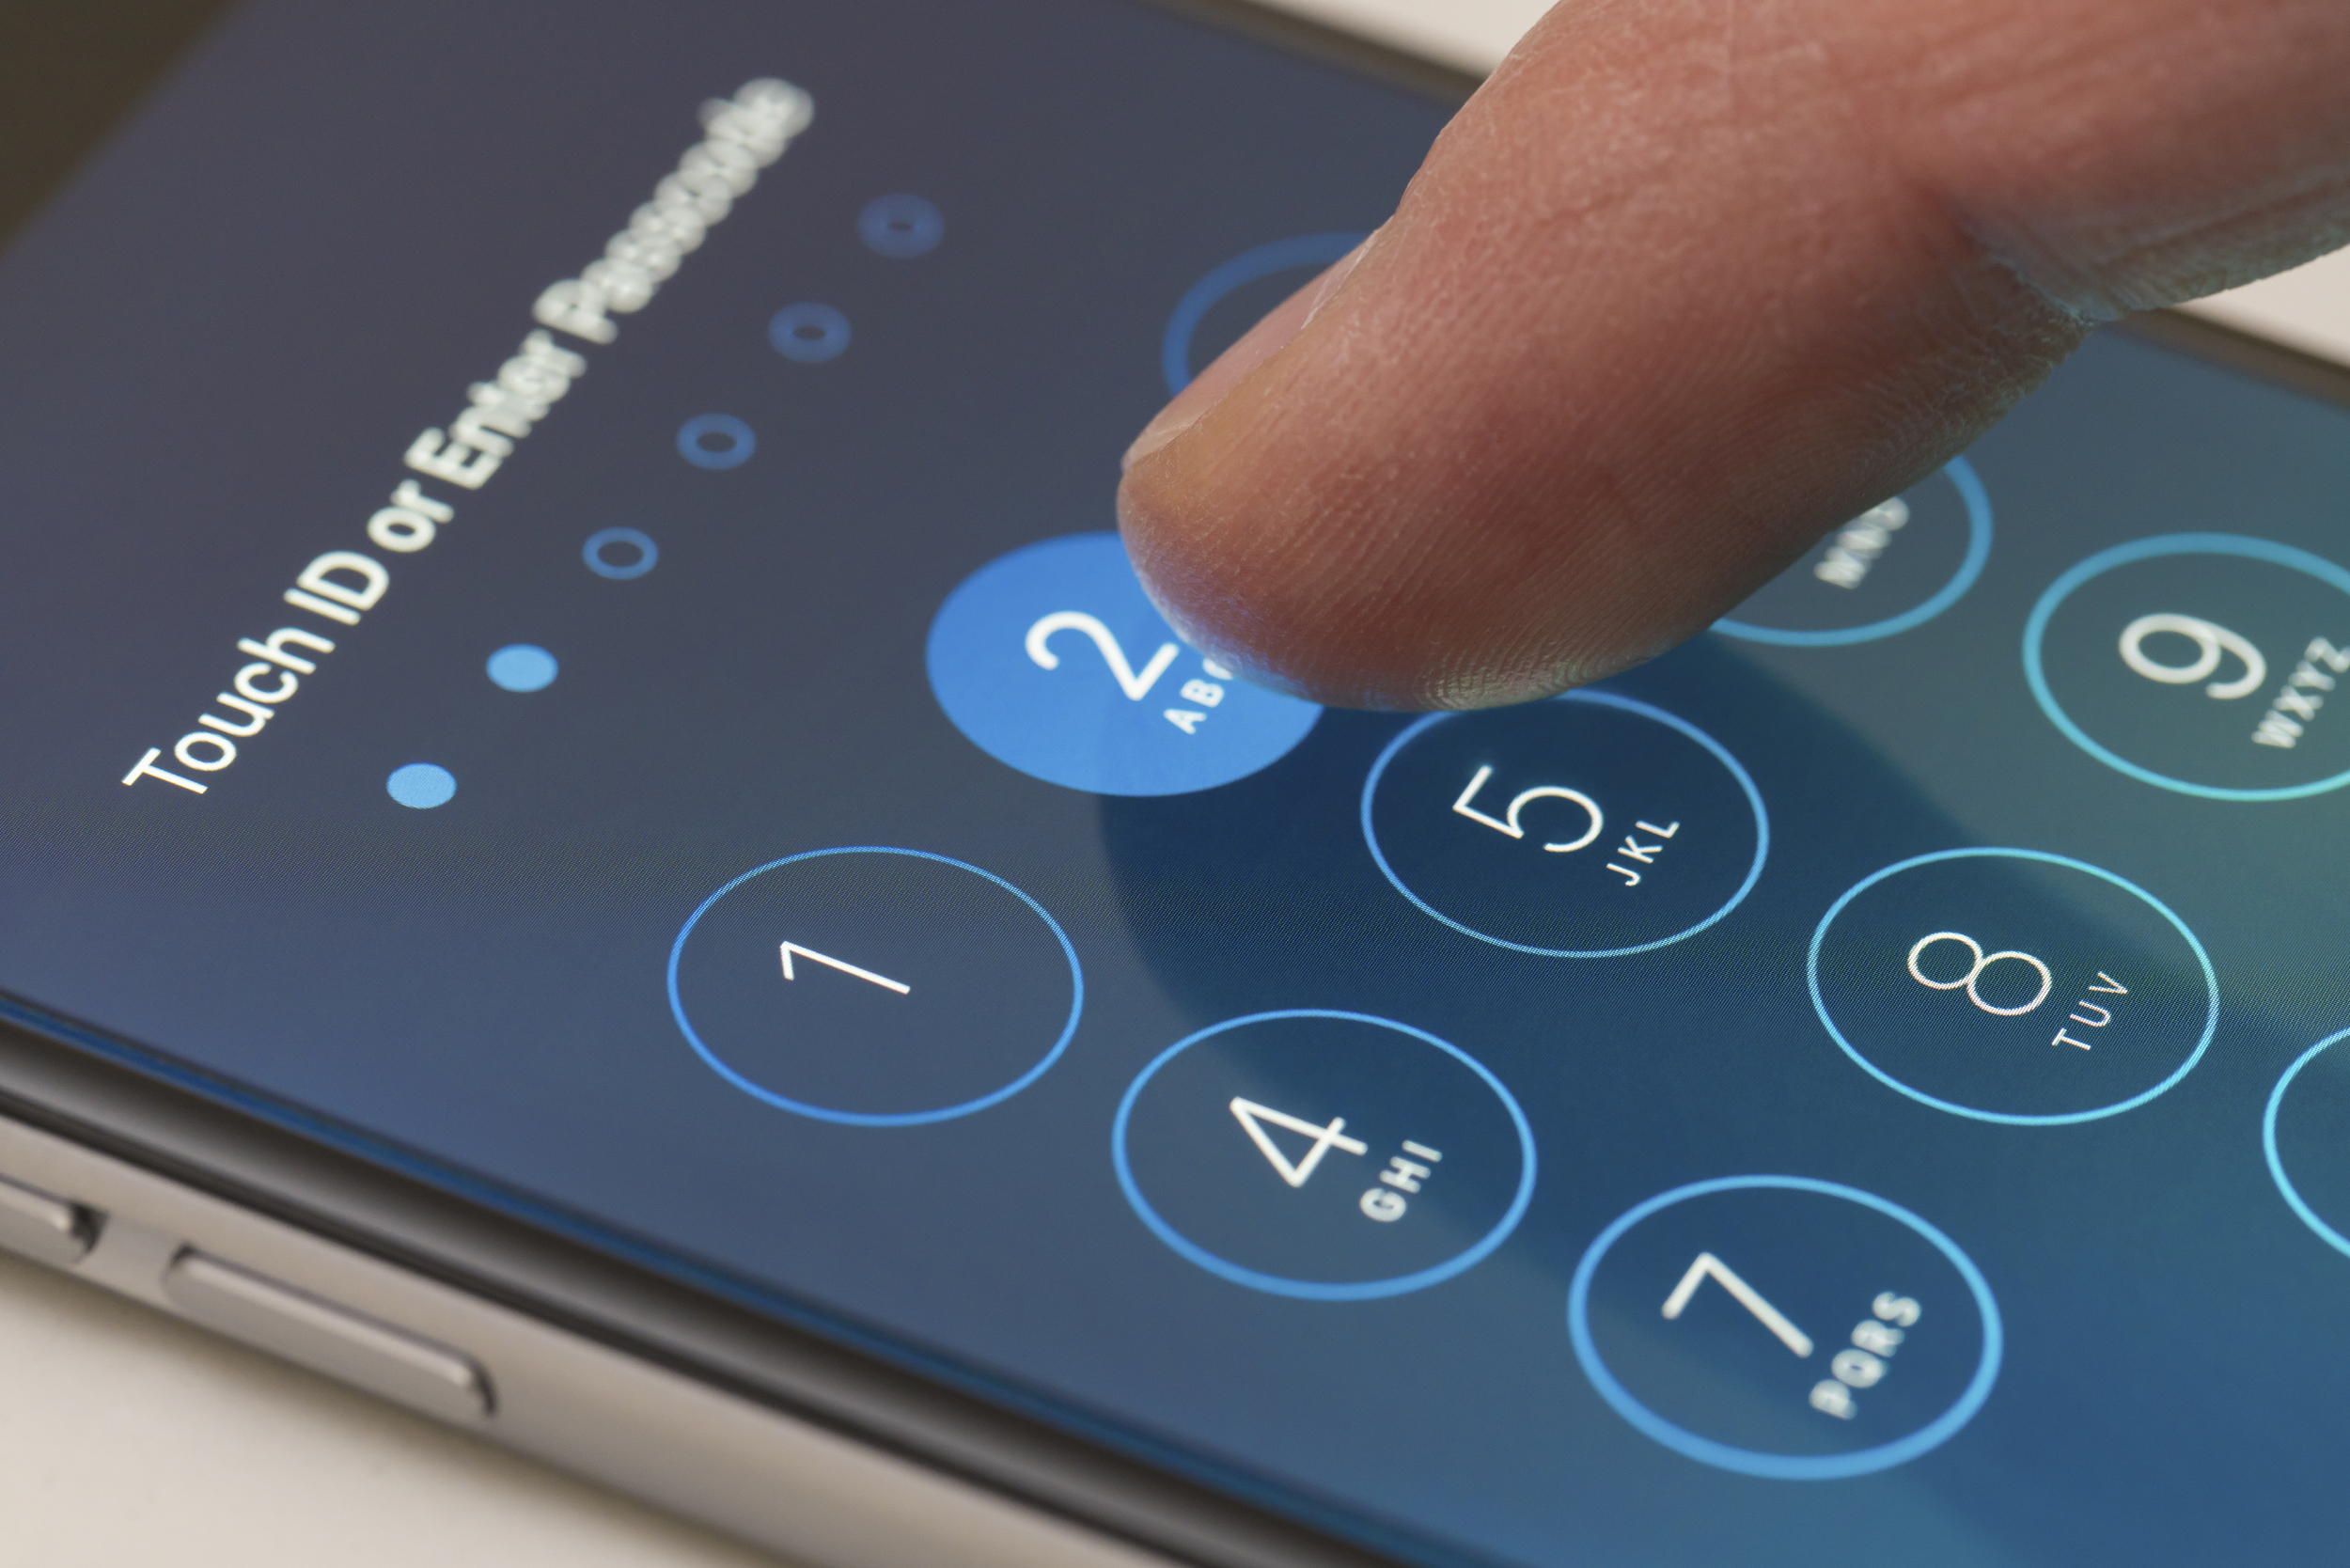 Why iPhone asks to enter the password when turning off?